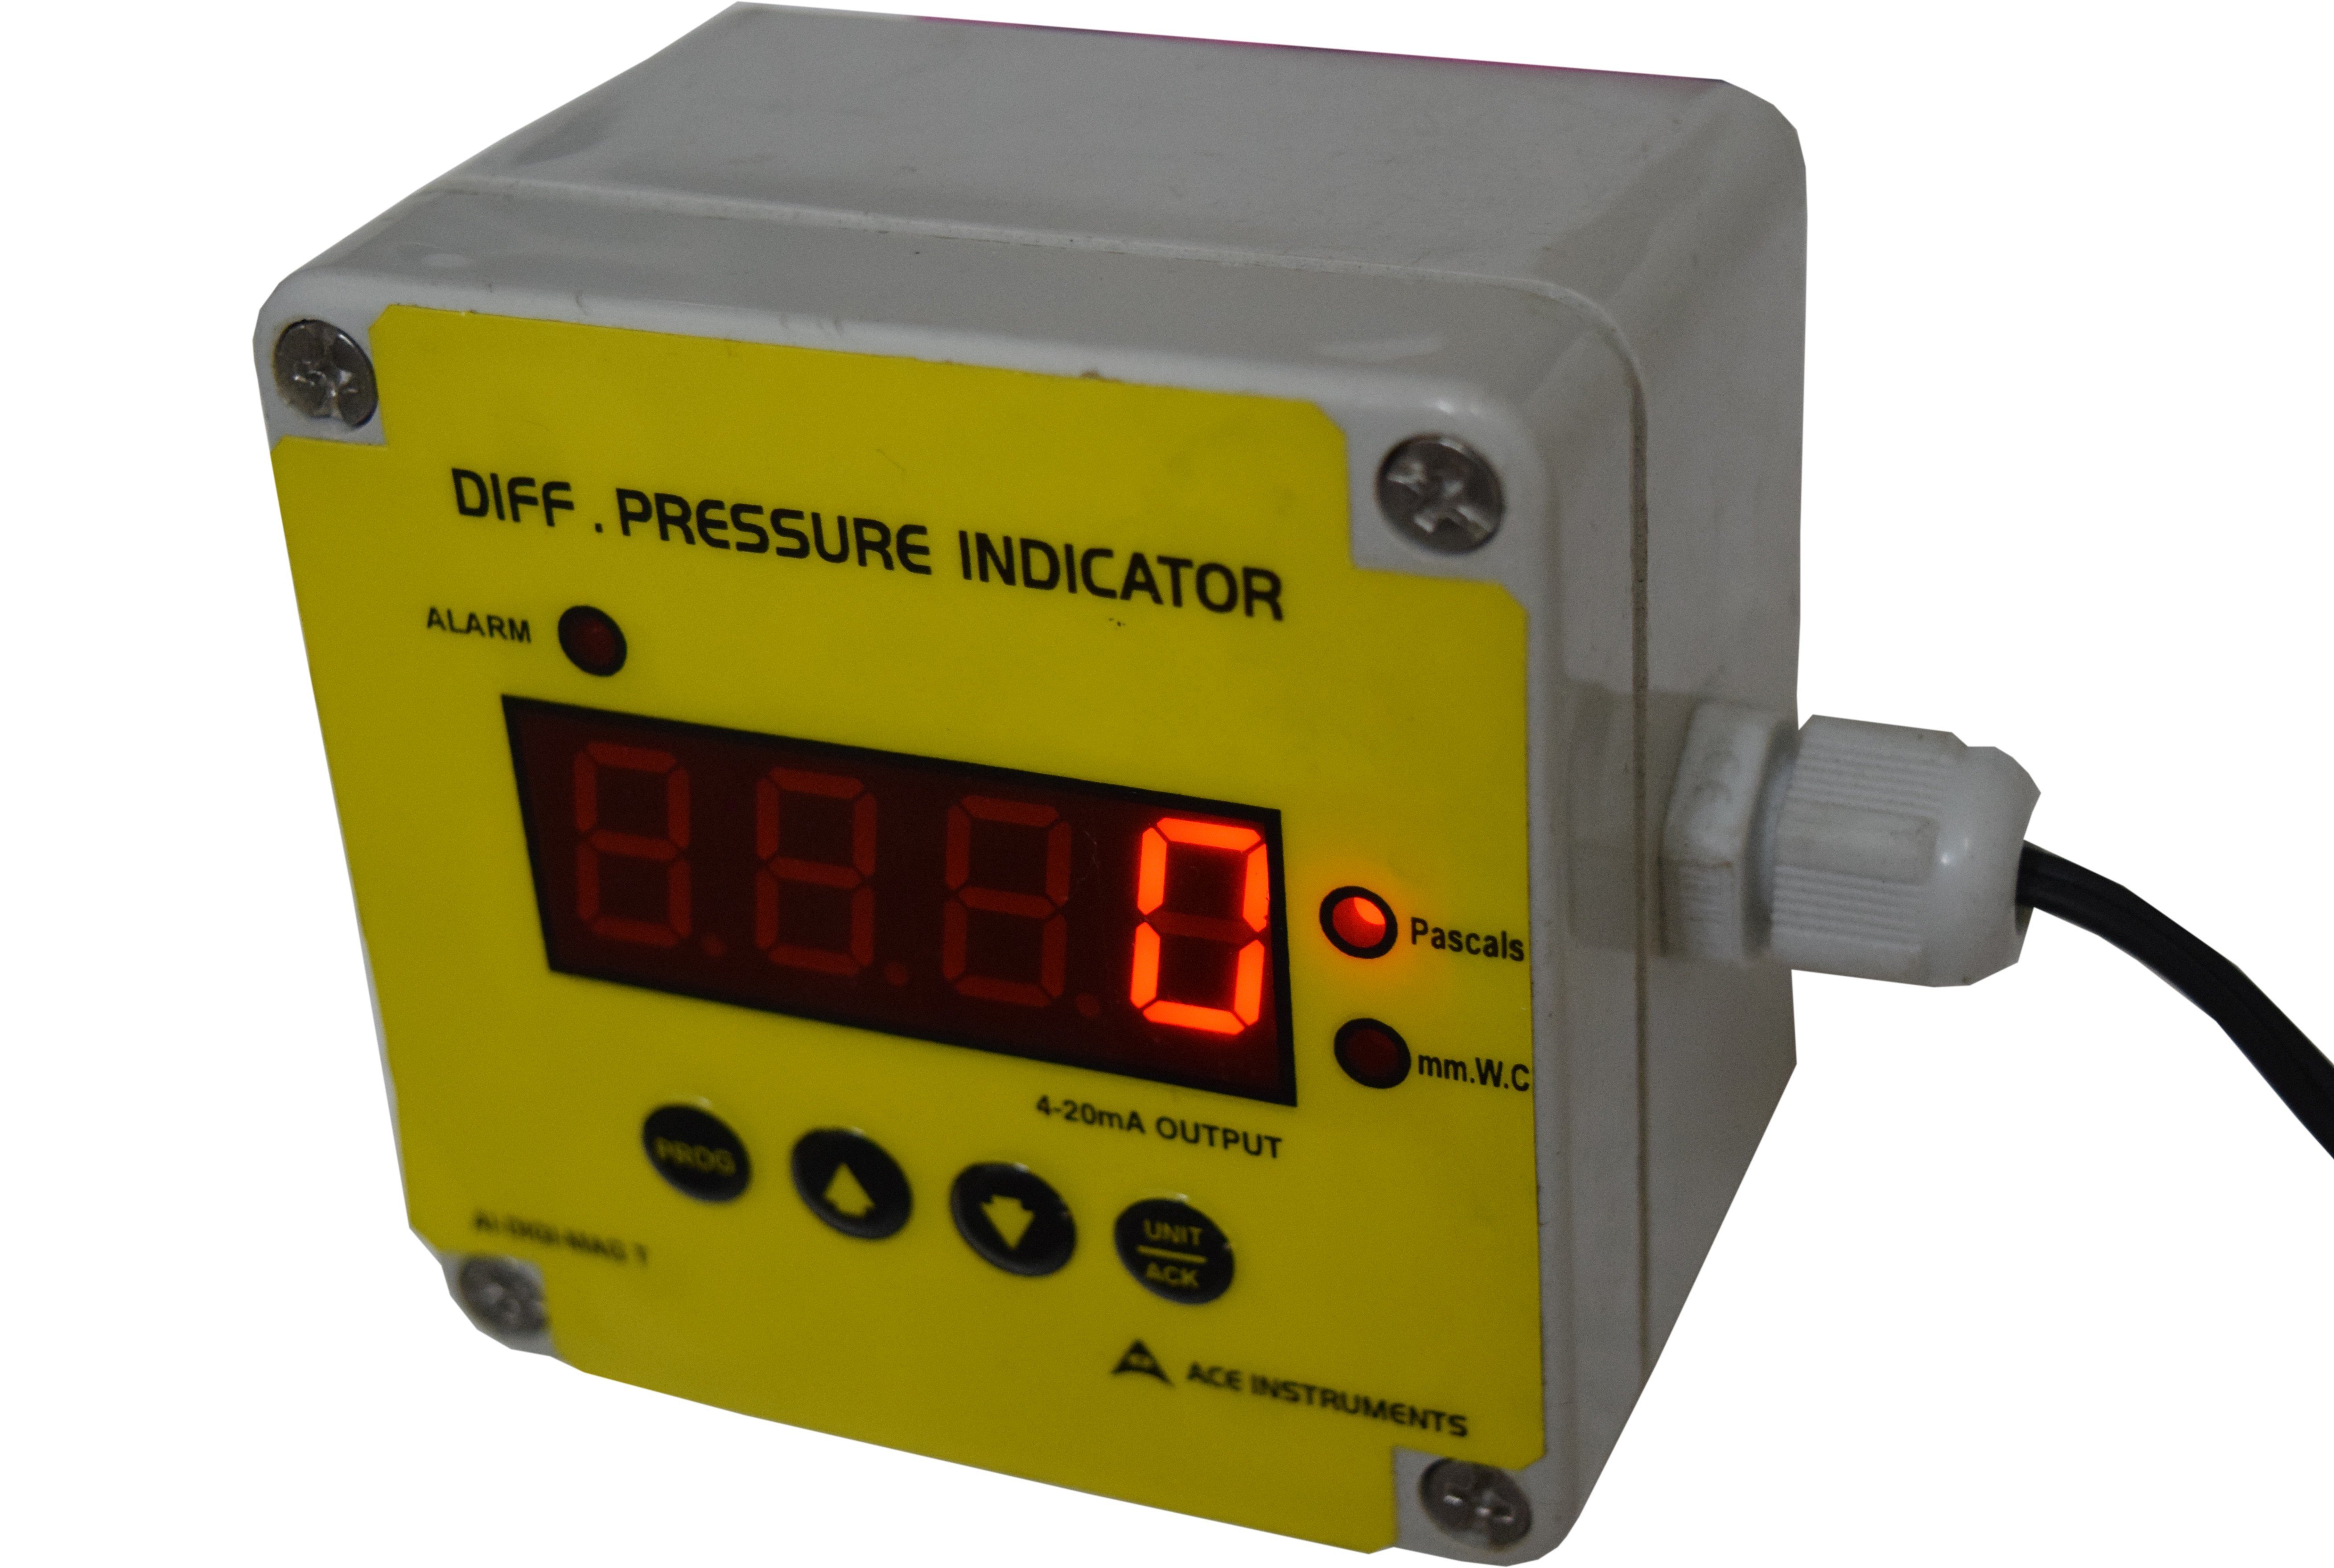 ACE AI-DIGI-MAG-T Digital Differential Pressure Transmitter